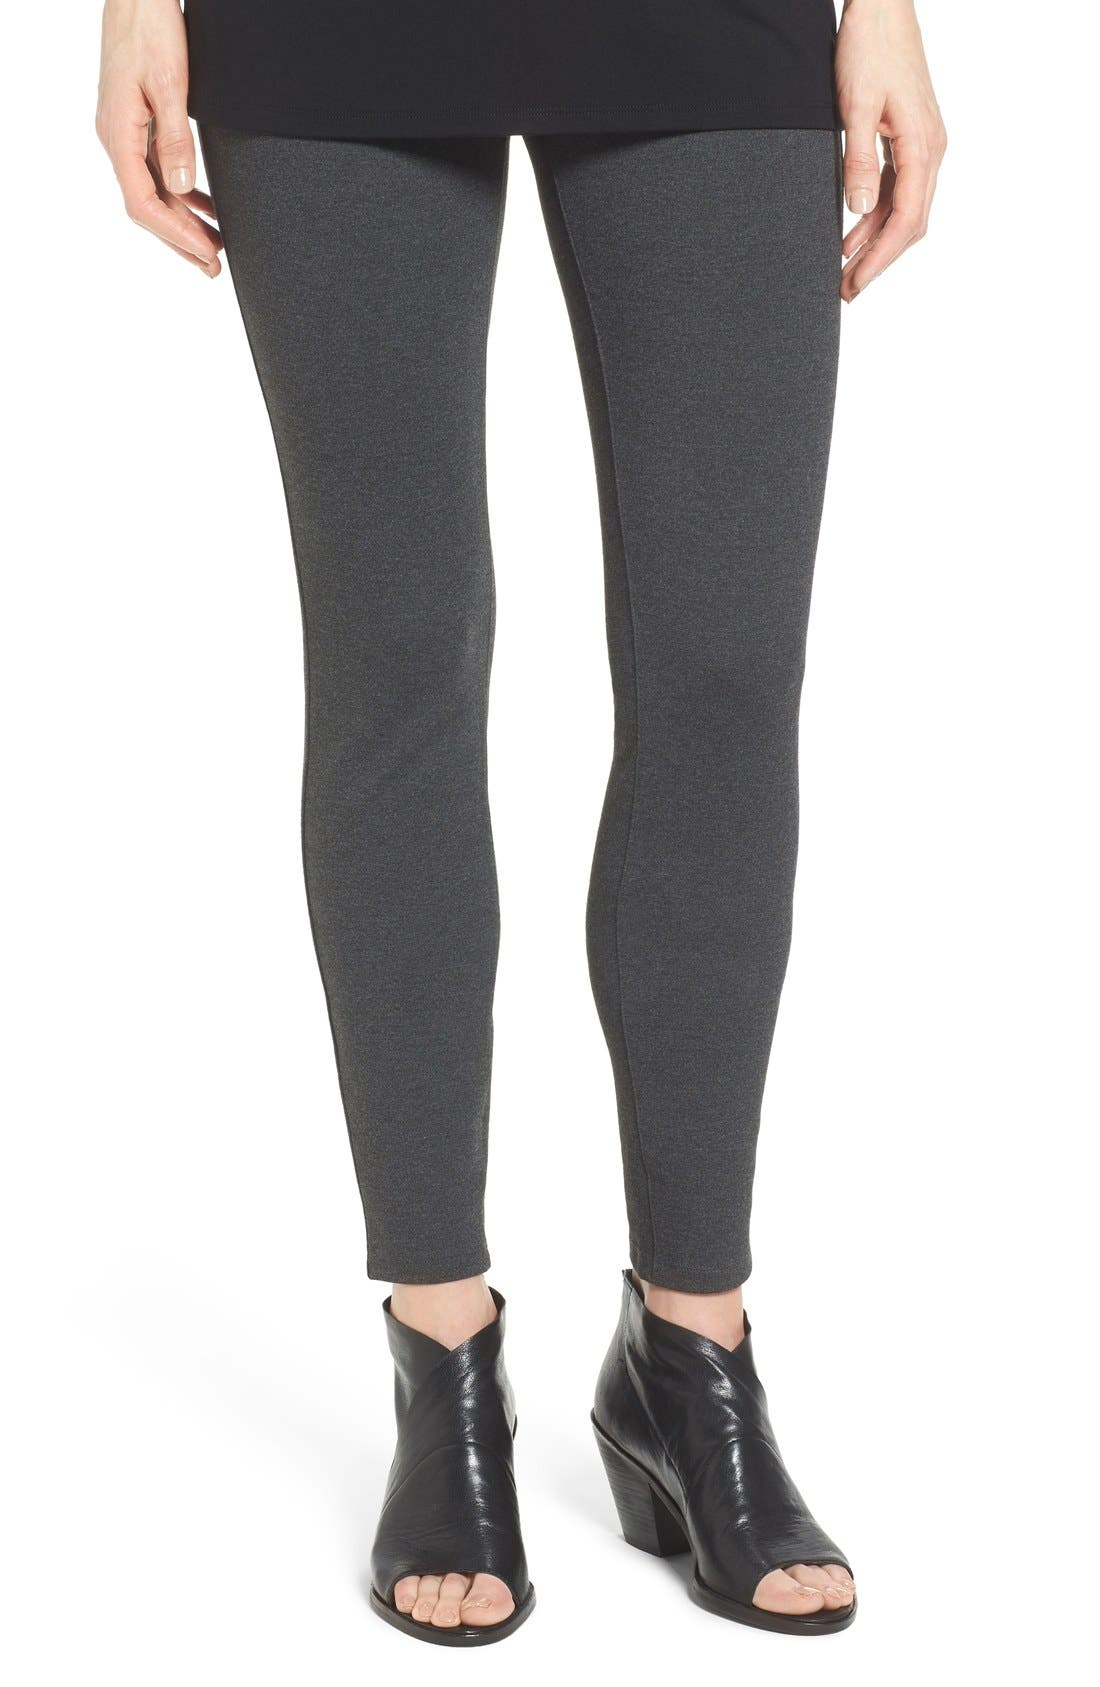 Main Image - Eileen Fisher Ponte Knit Leggings (Regular & Petite)